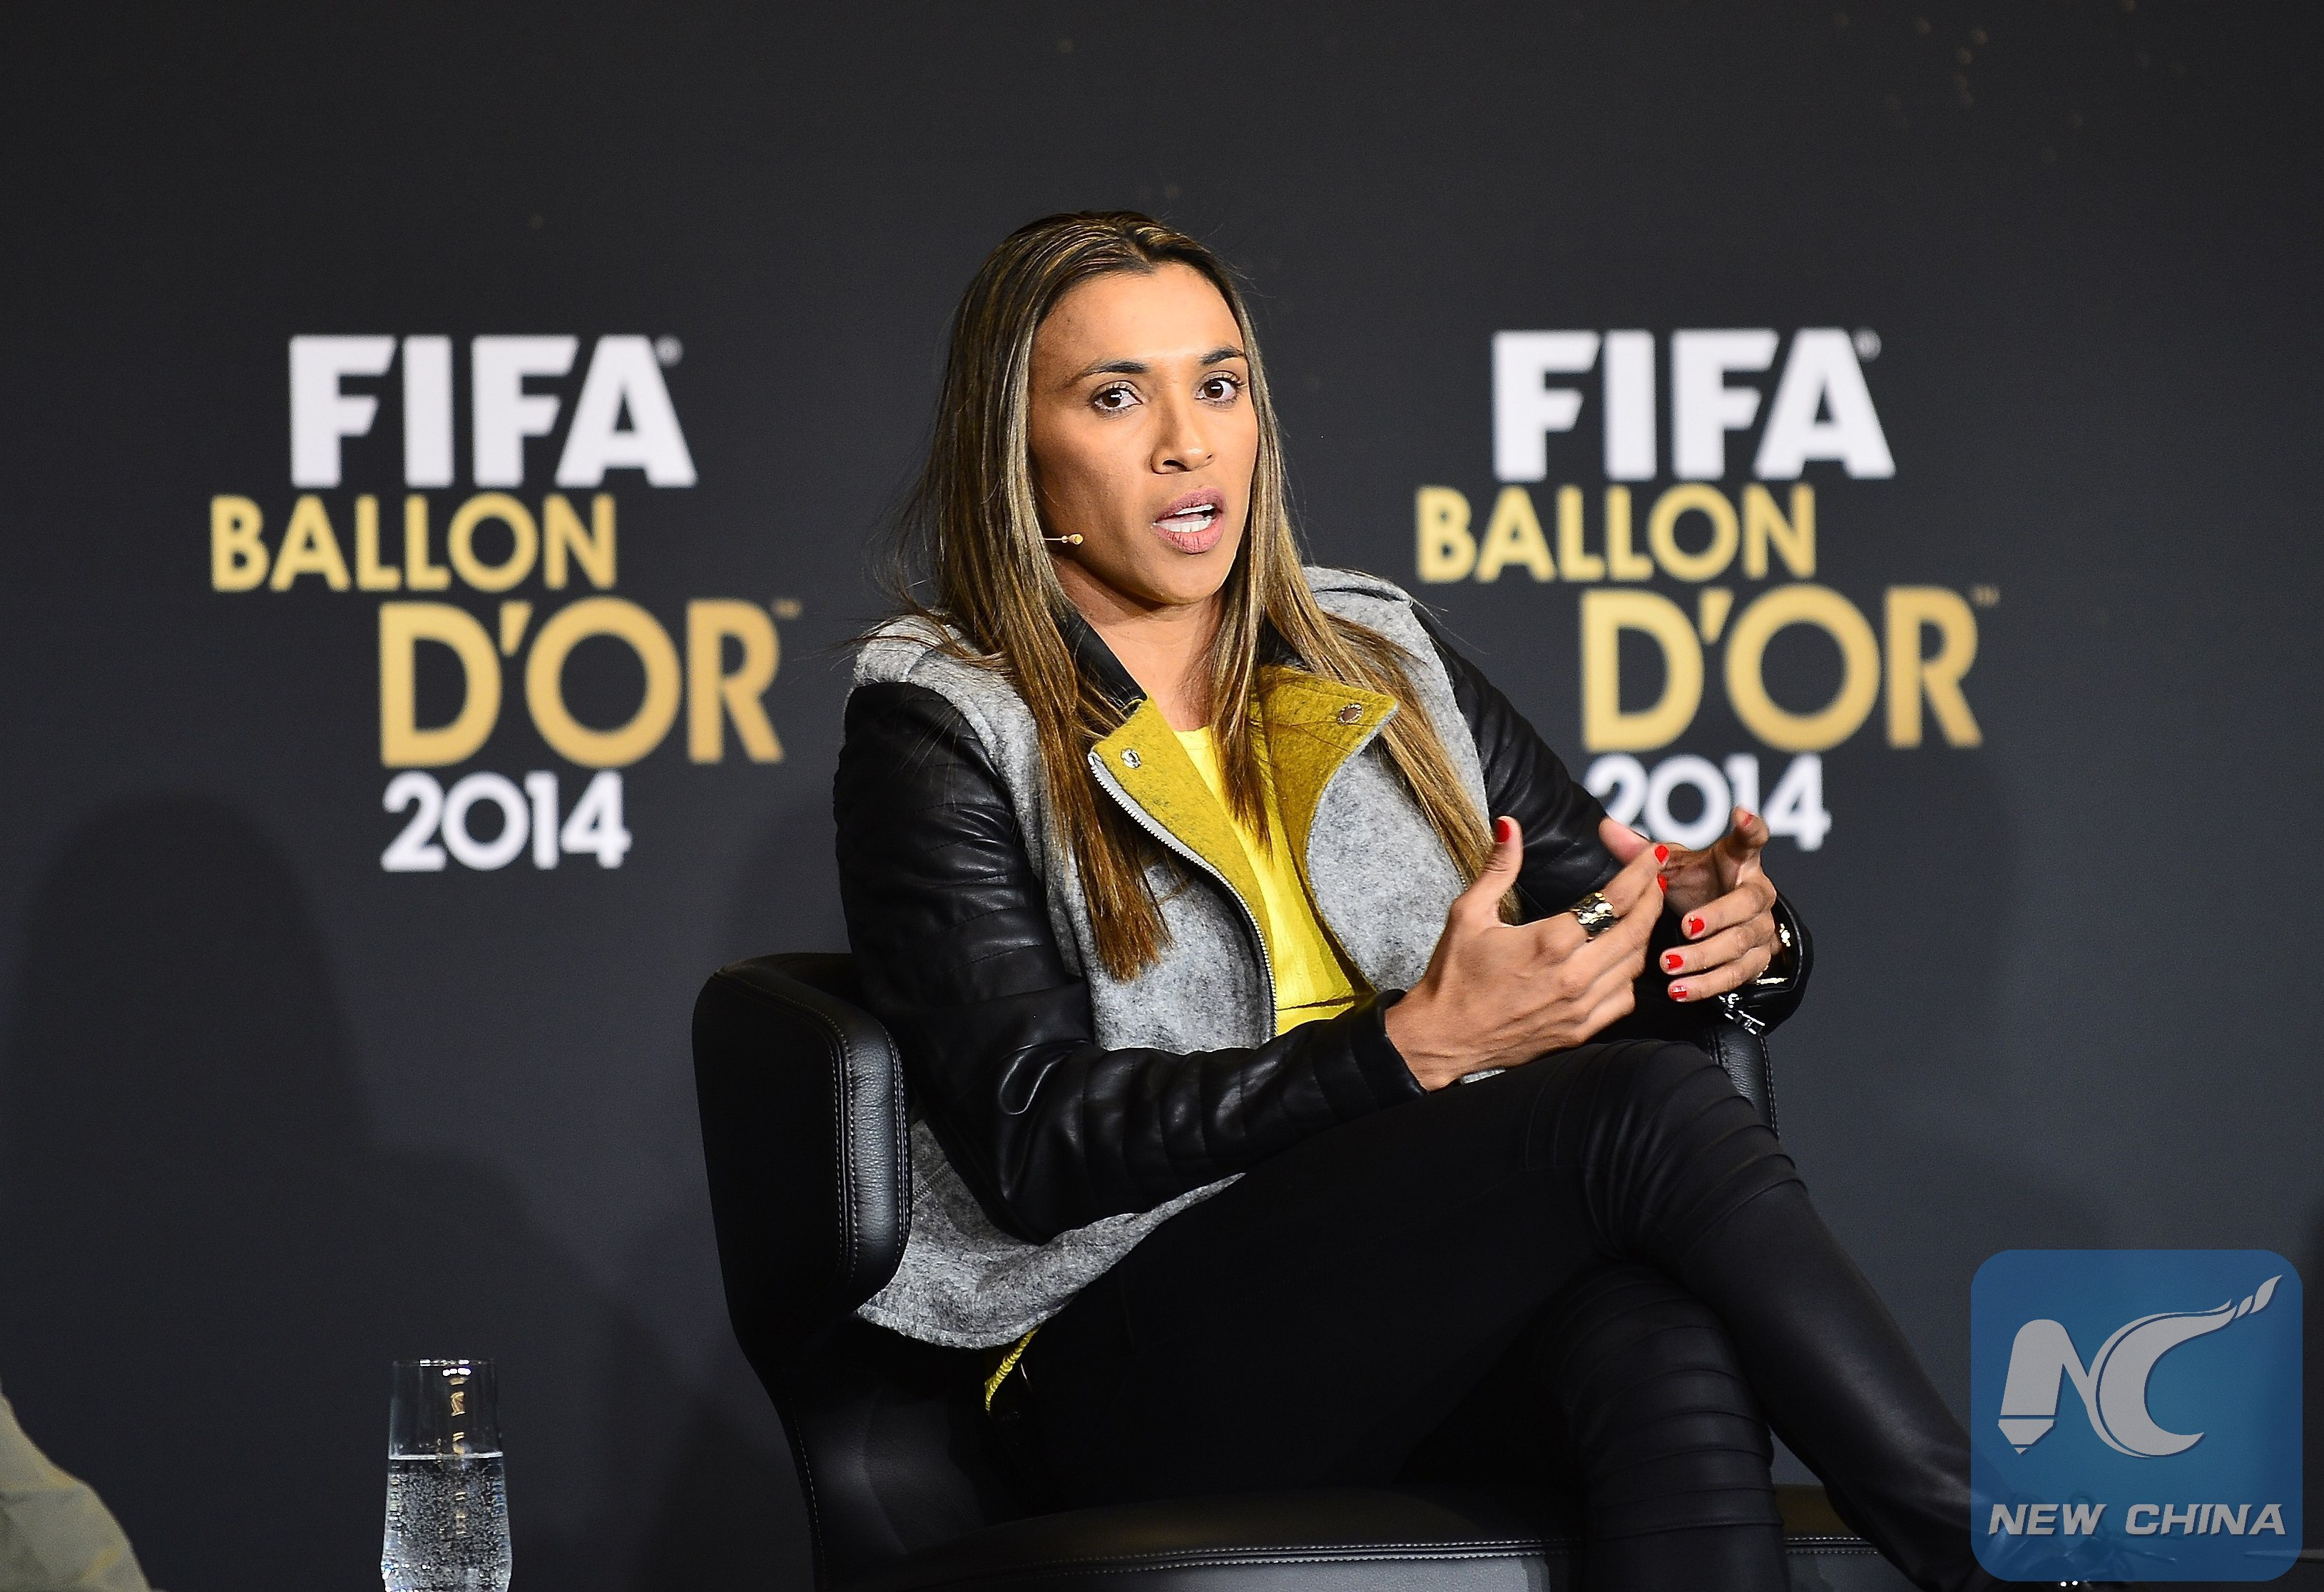 UN appoints Brazilian women's soccer legend Marta as SDG goals advocate